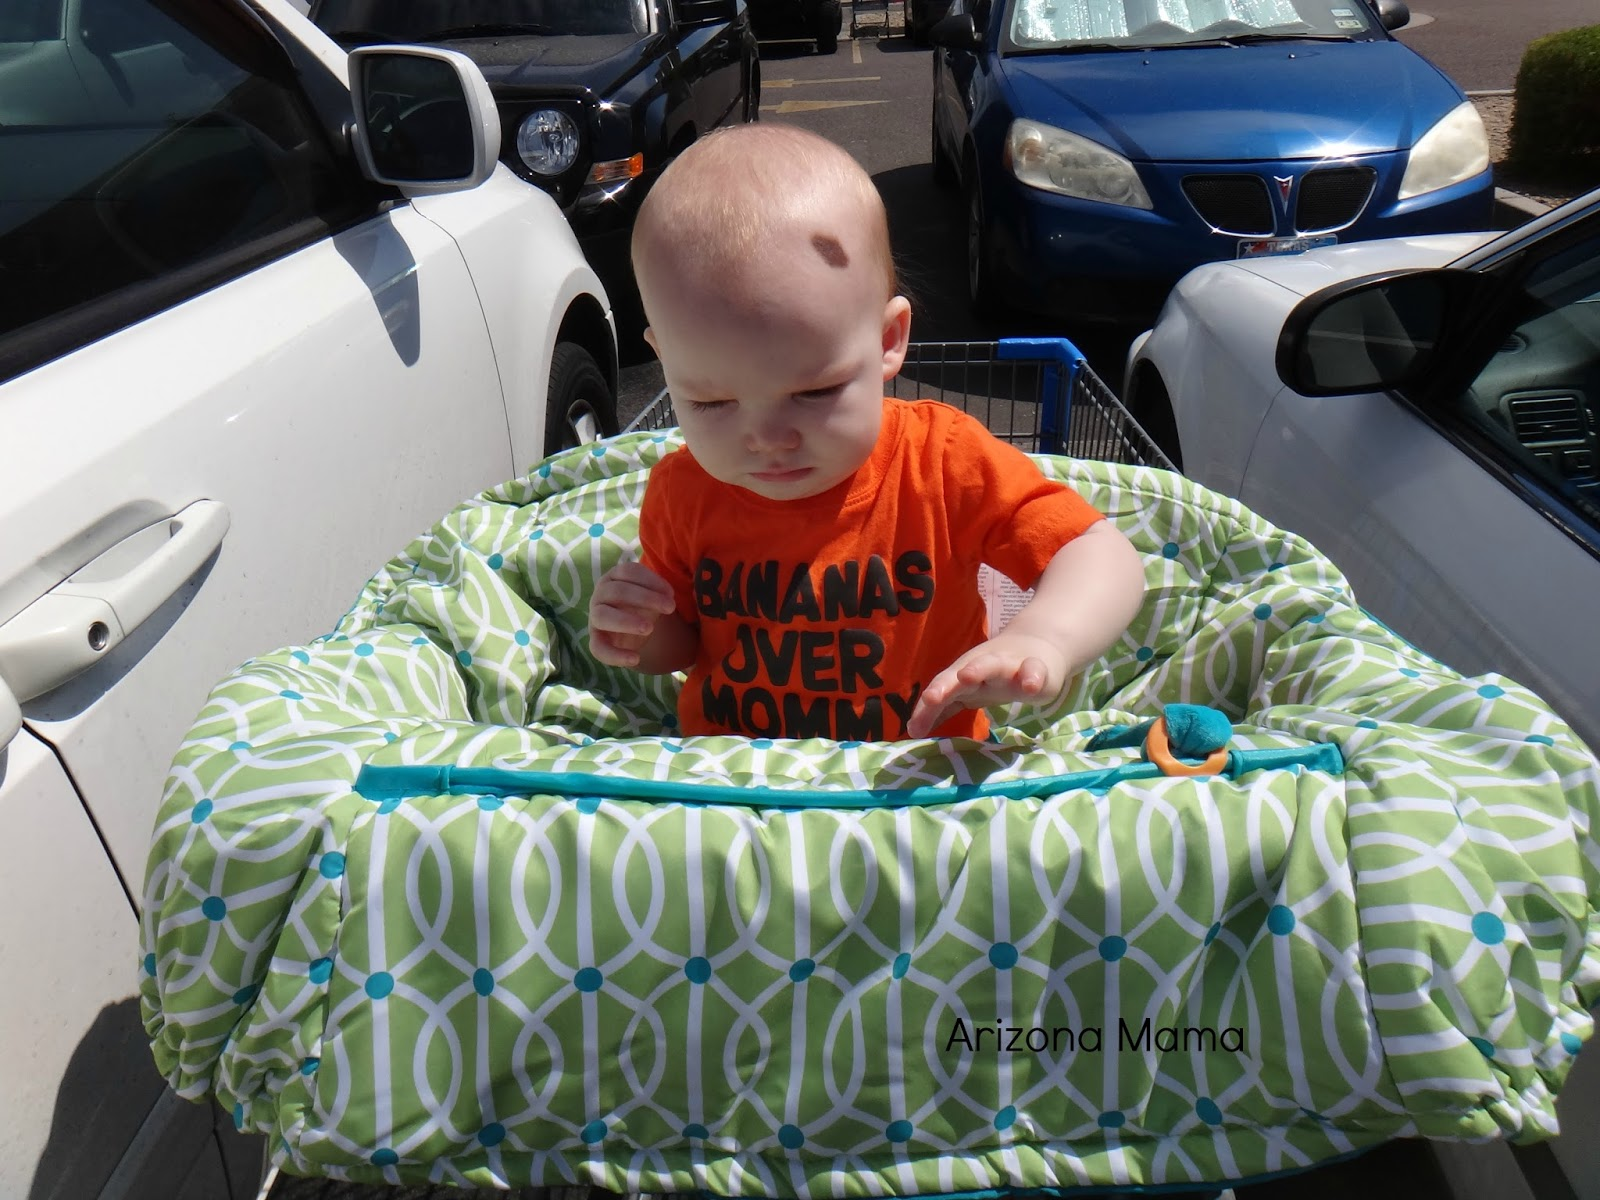 Boppy Baby Chair Green Marbles Academy Lawn Chairs Arizona Mama Cutting Down Germs While On The Go With